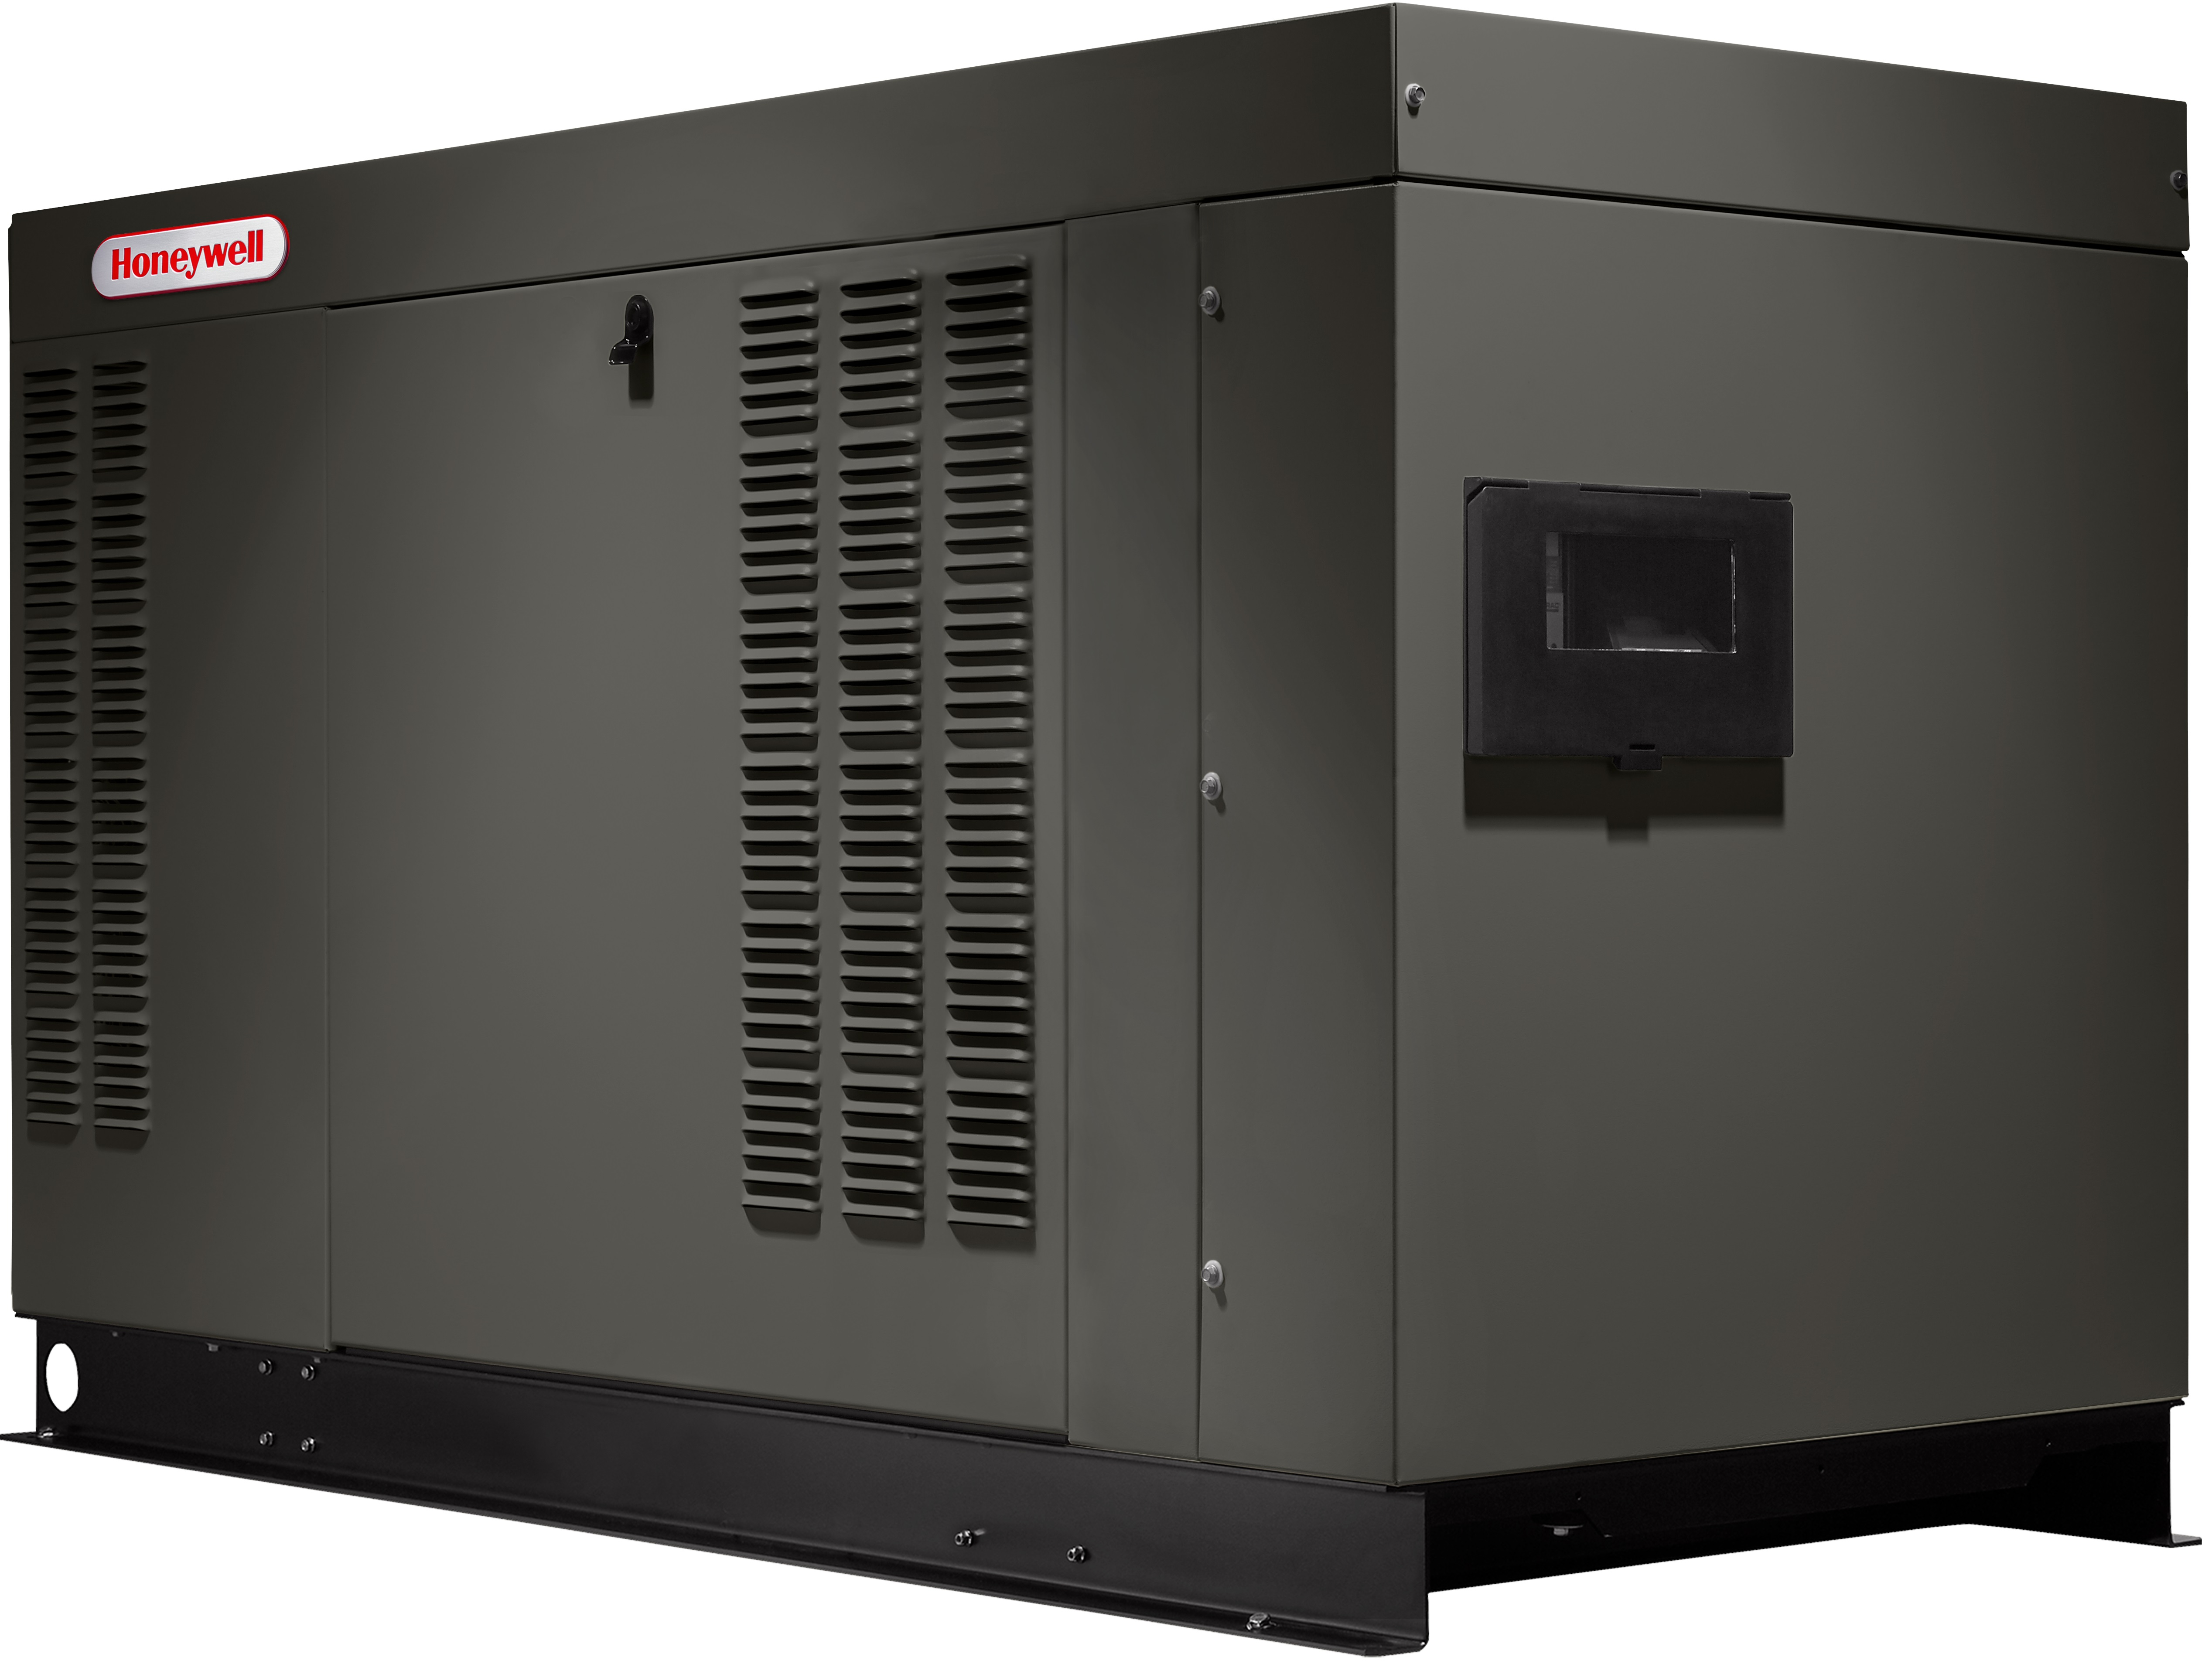 Honeywell 48 kW Commercial Backup Generator